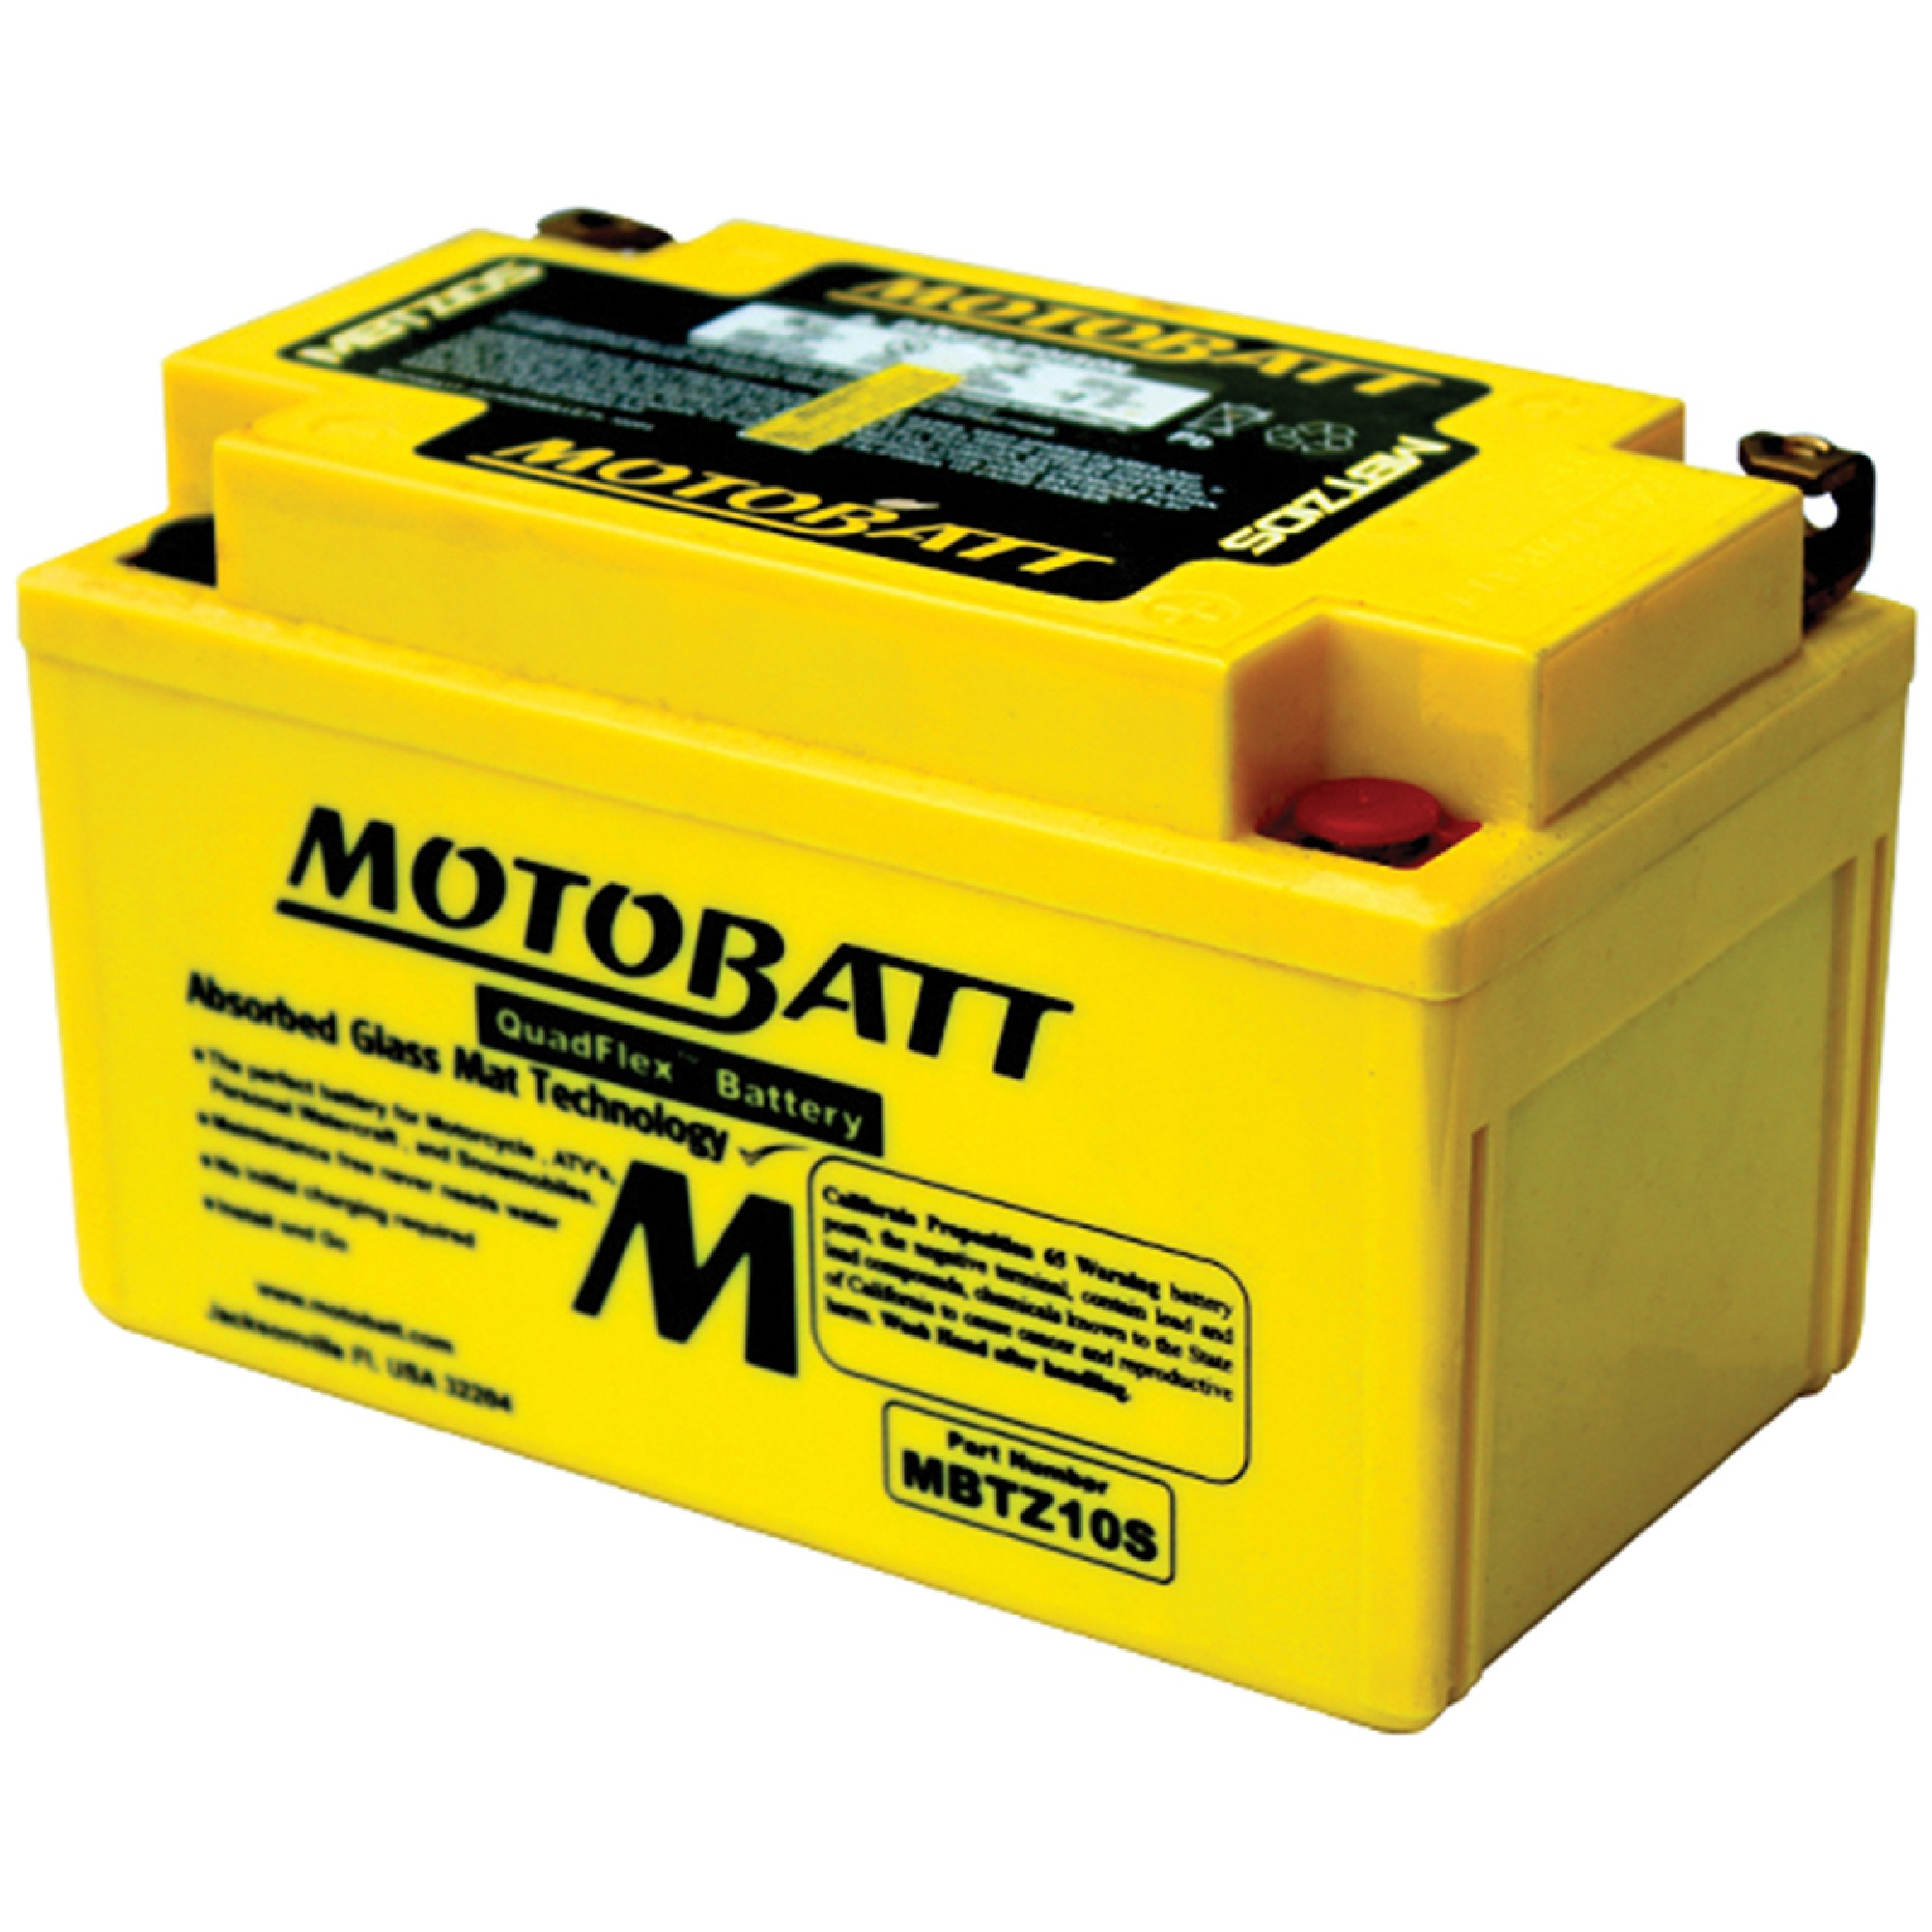 Motobatt Battery For Honda CBR929RR, RE 929cc 00-01